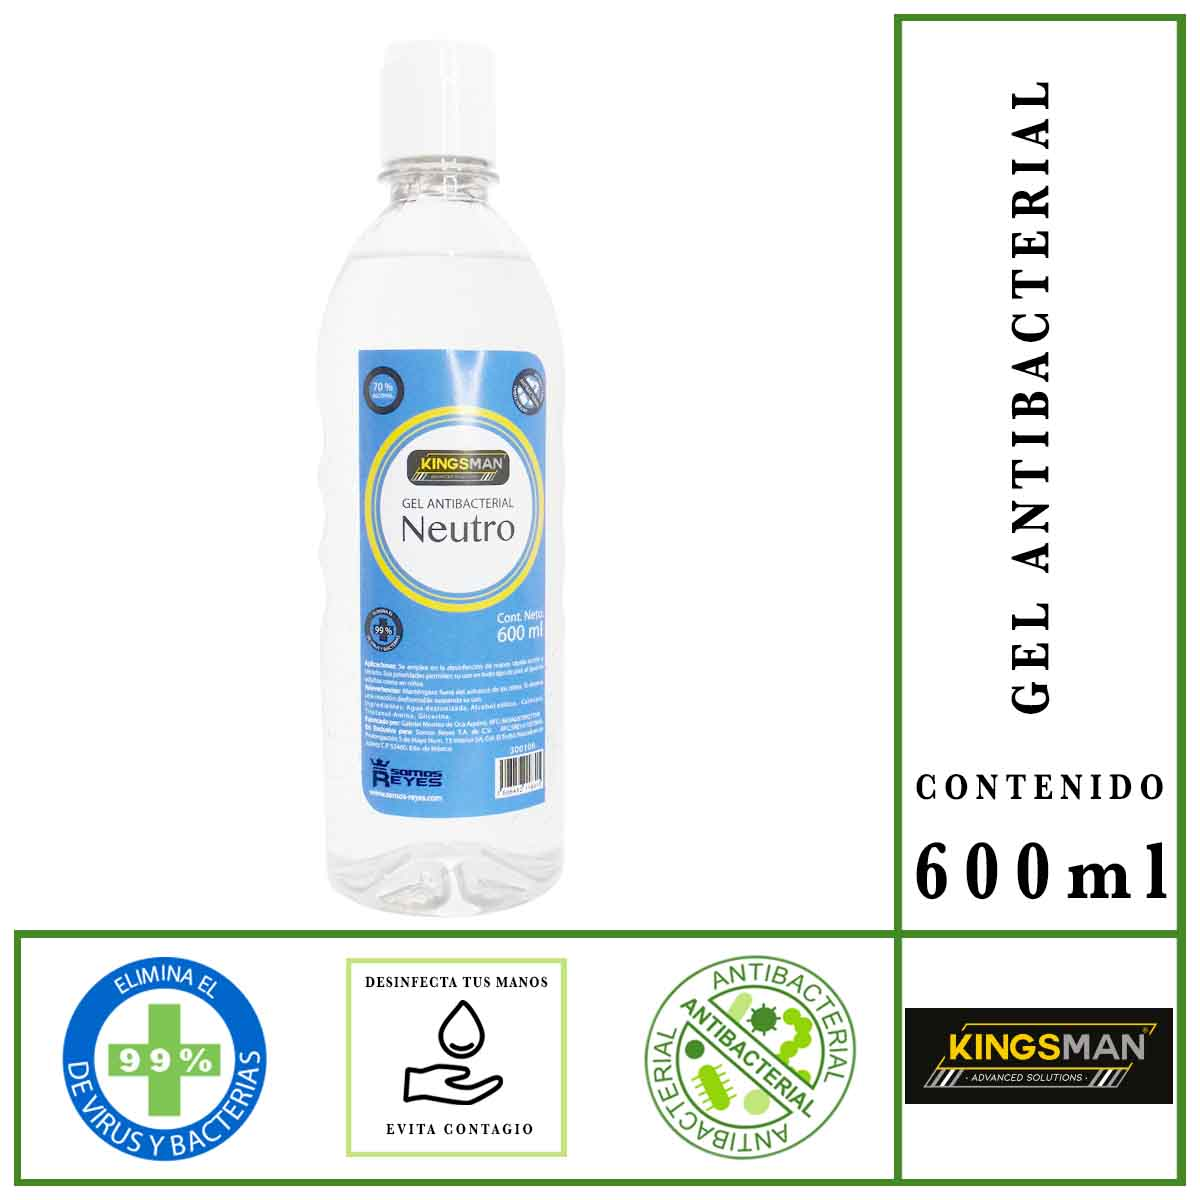 Gel Antibacterial Desinfectante De Manos 600 ml 70% Alcohol